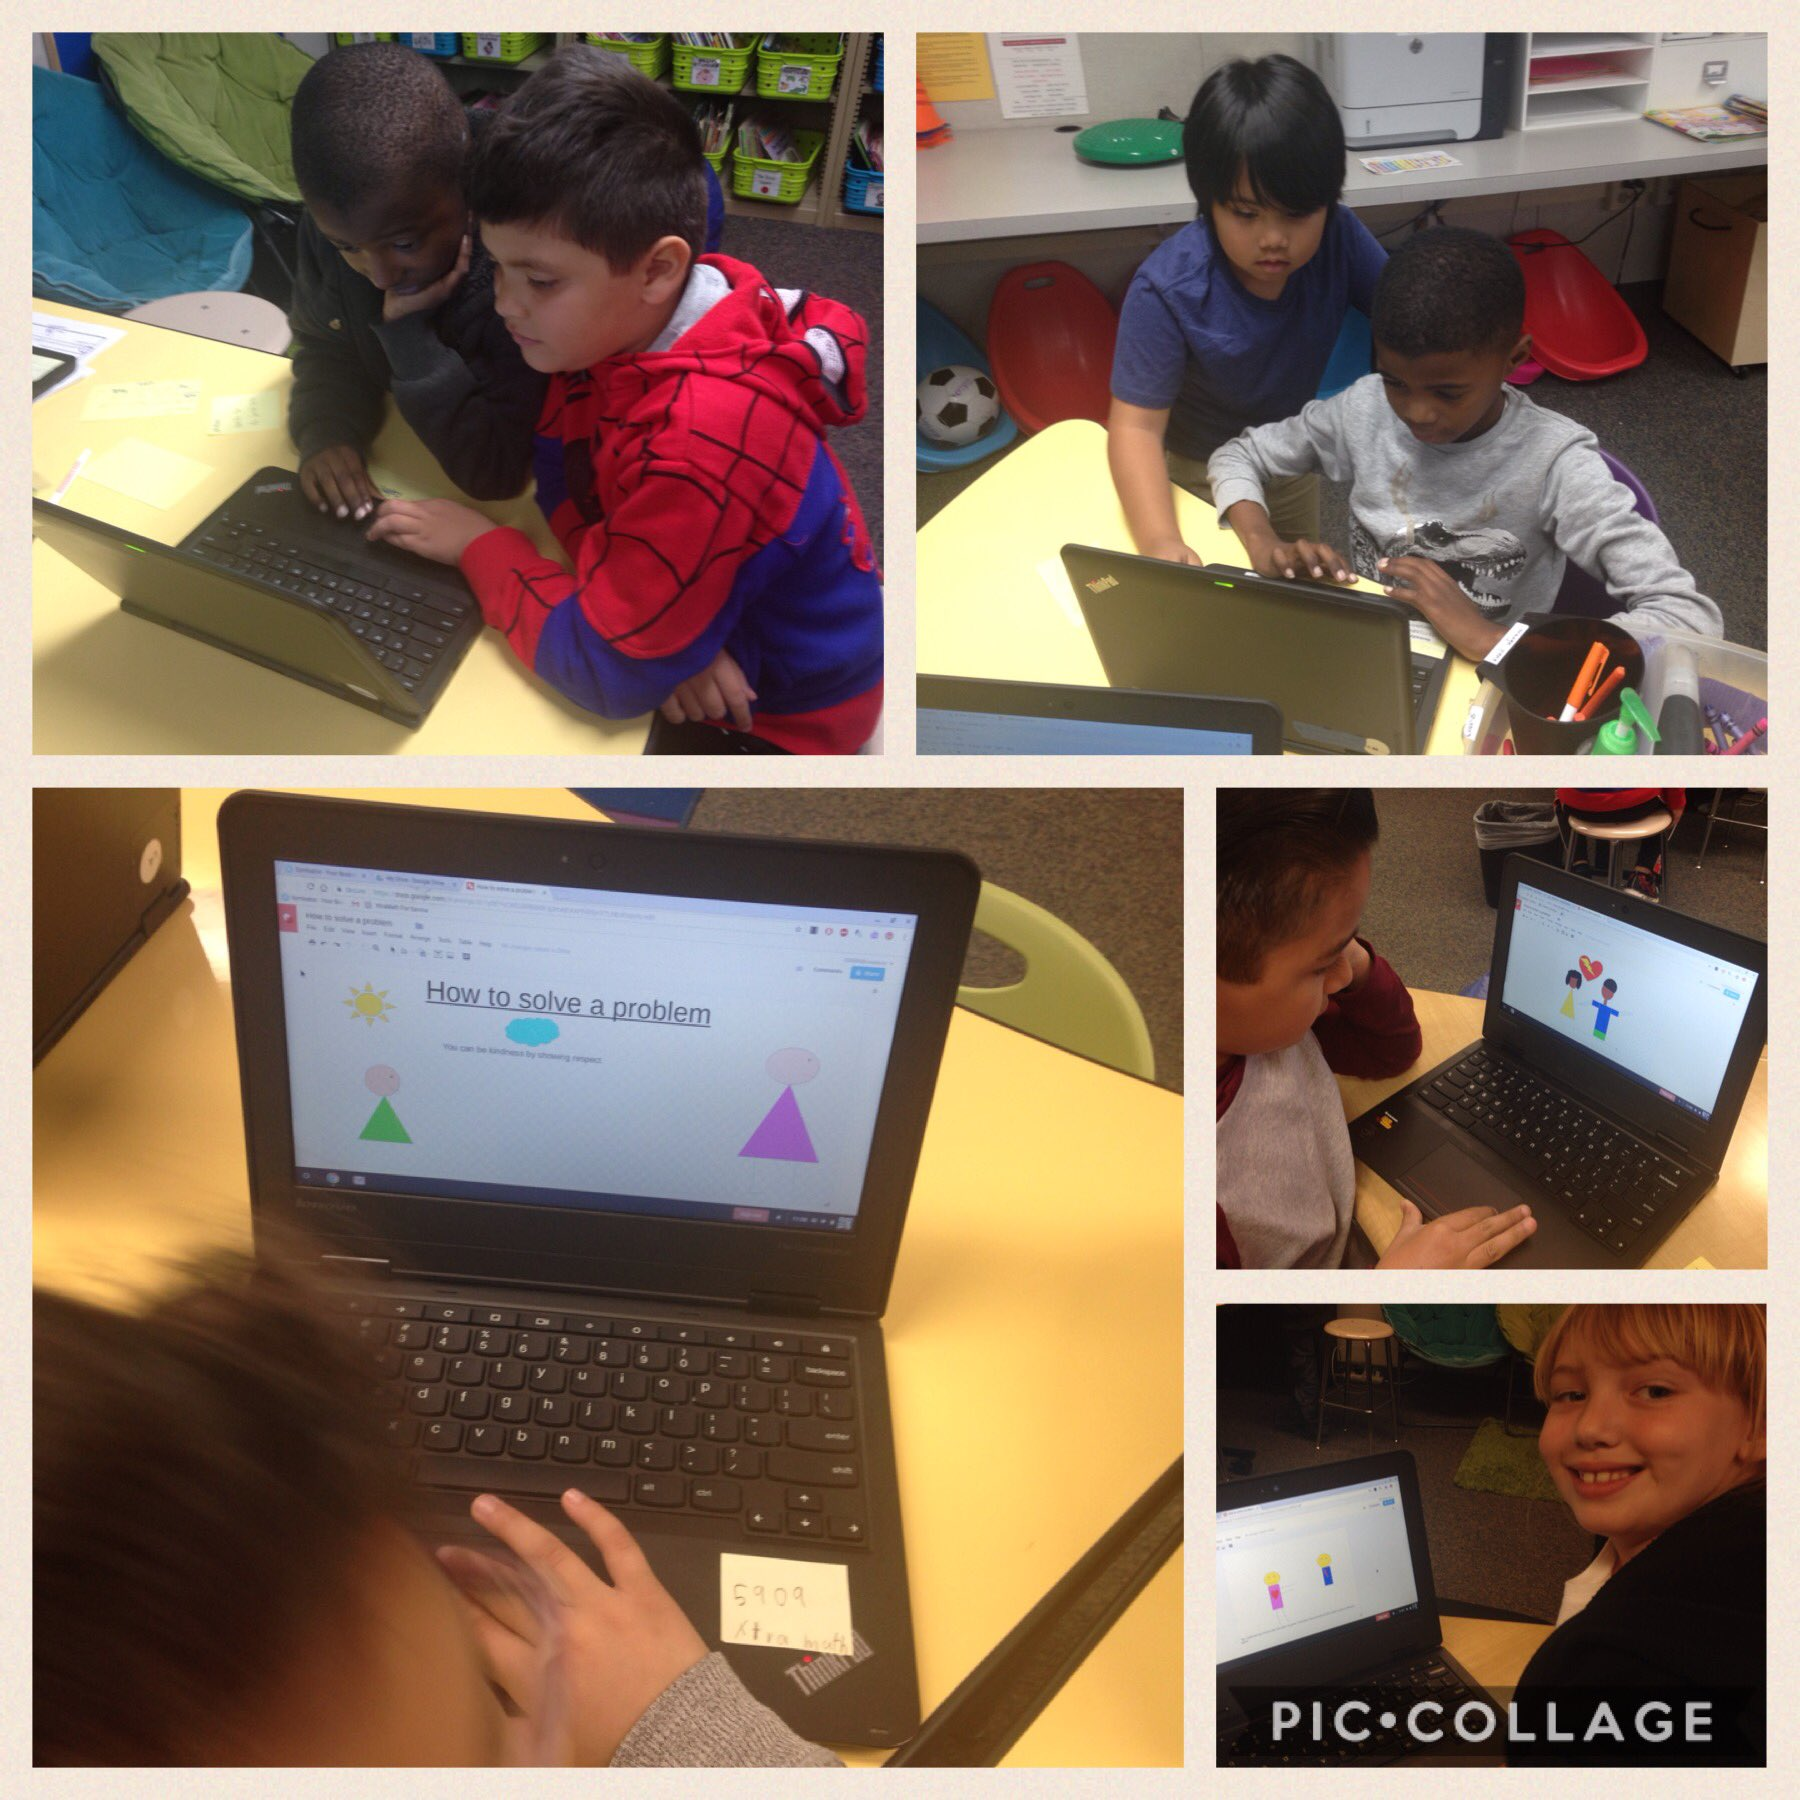 Brainstorming conflict resolution on the playground & responding via Google Draw #cvDLDay @CajonValleyUSD @MagnoliaCVUSD https://t.co/6tPtfgZD0A